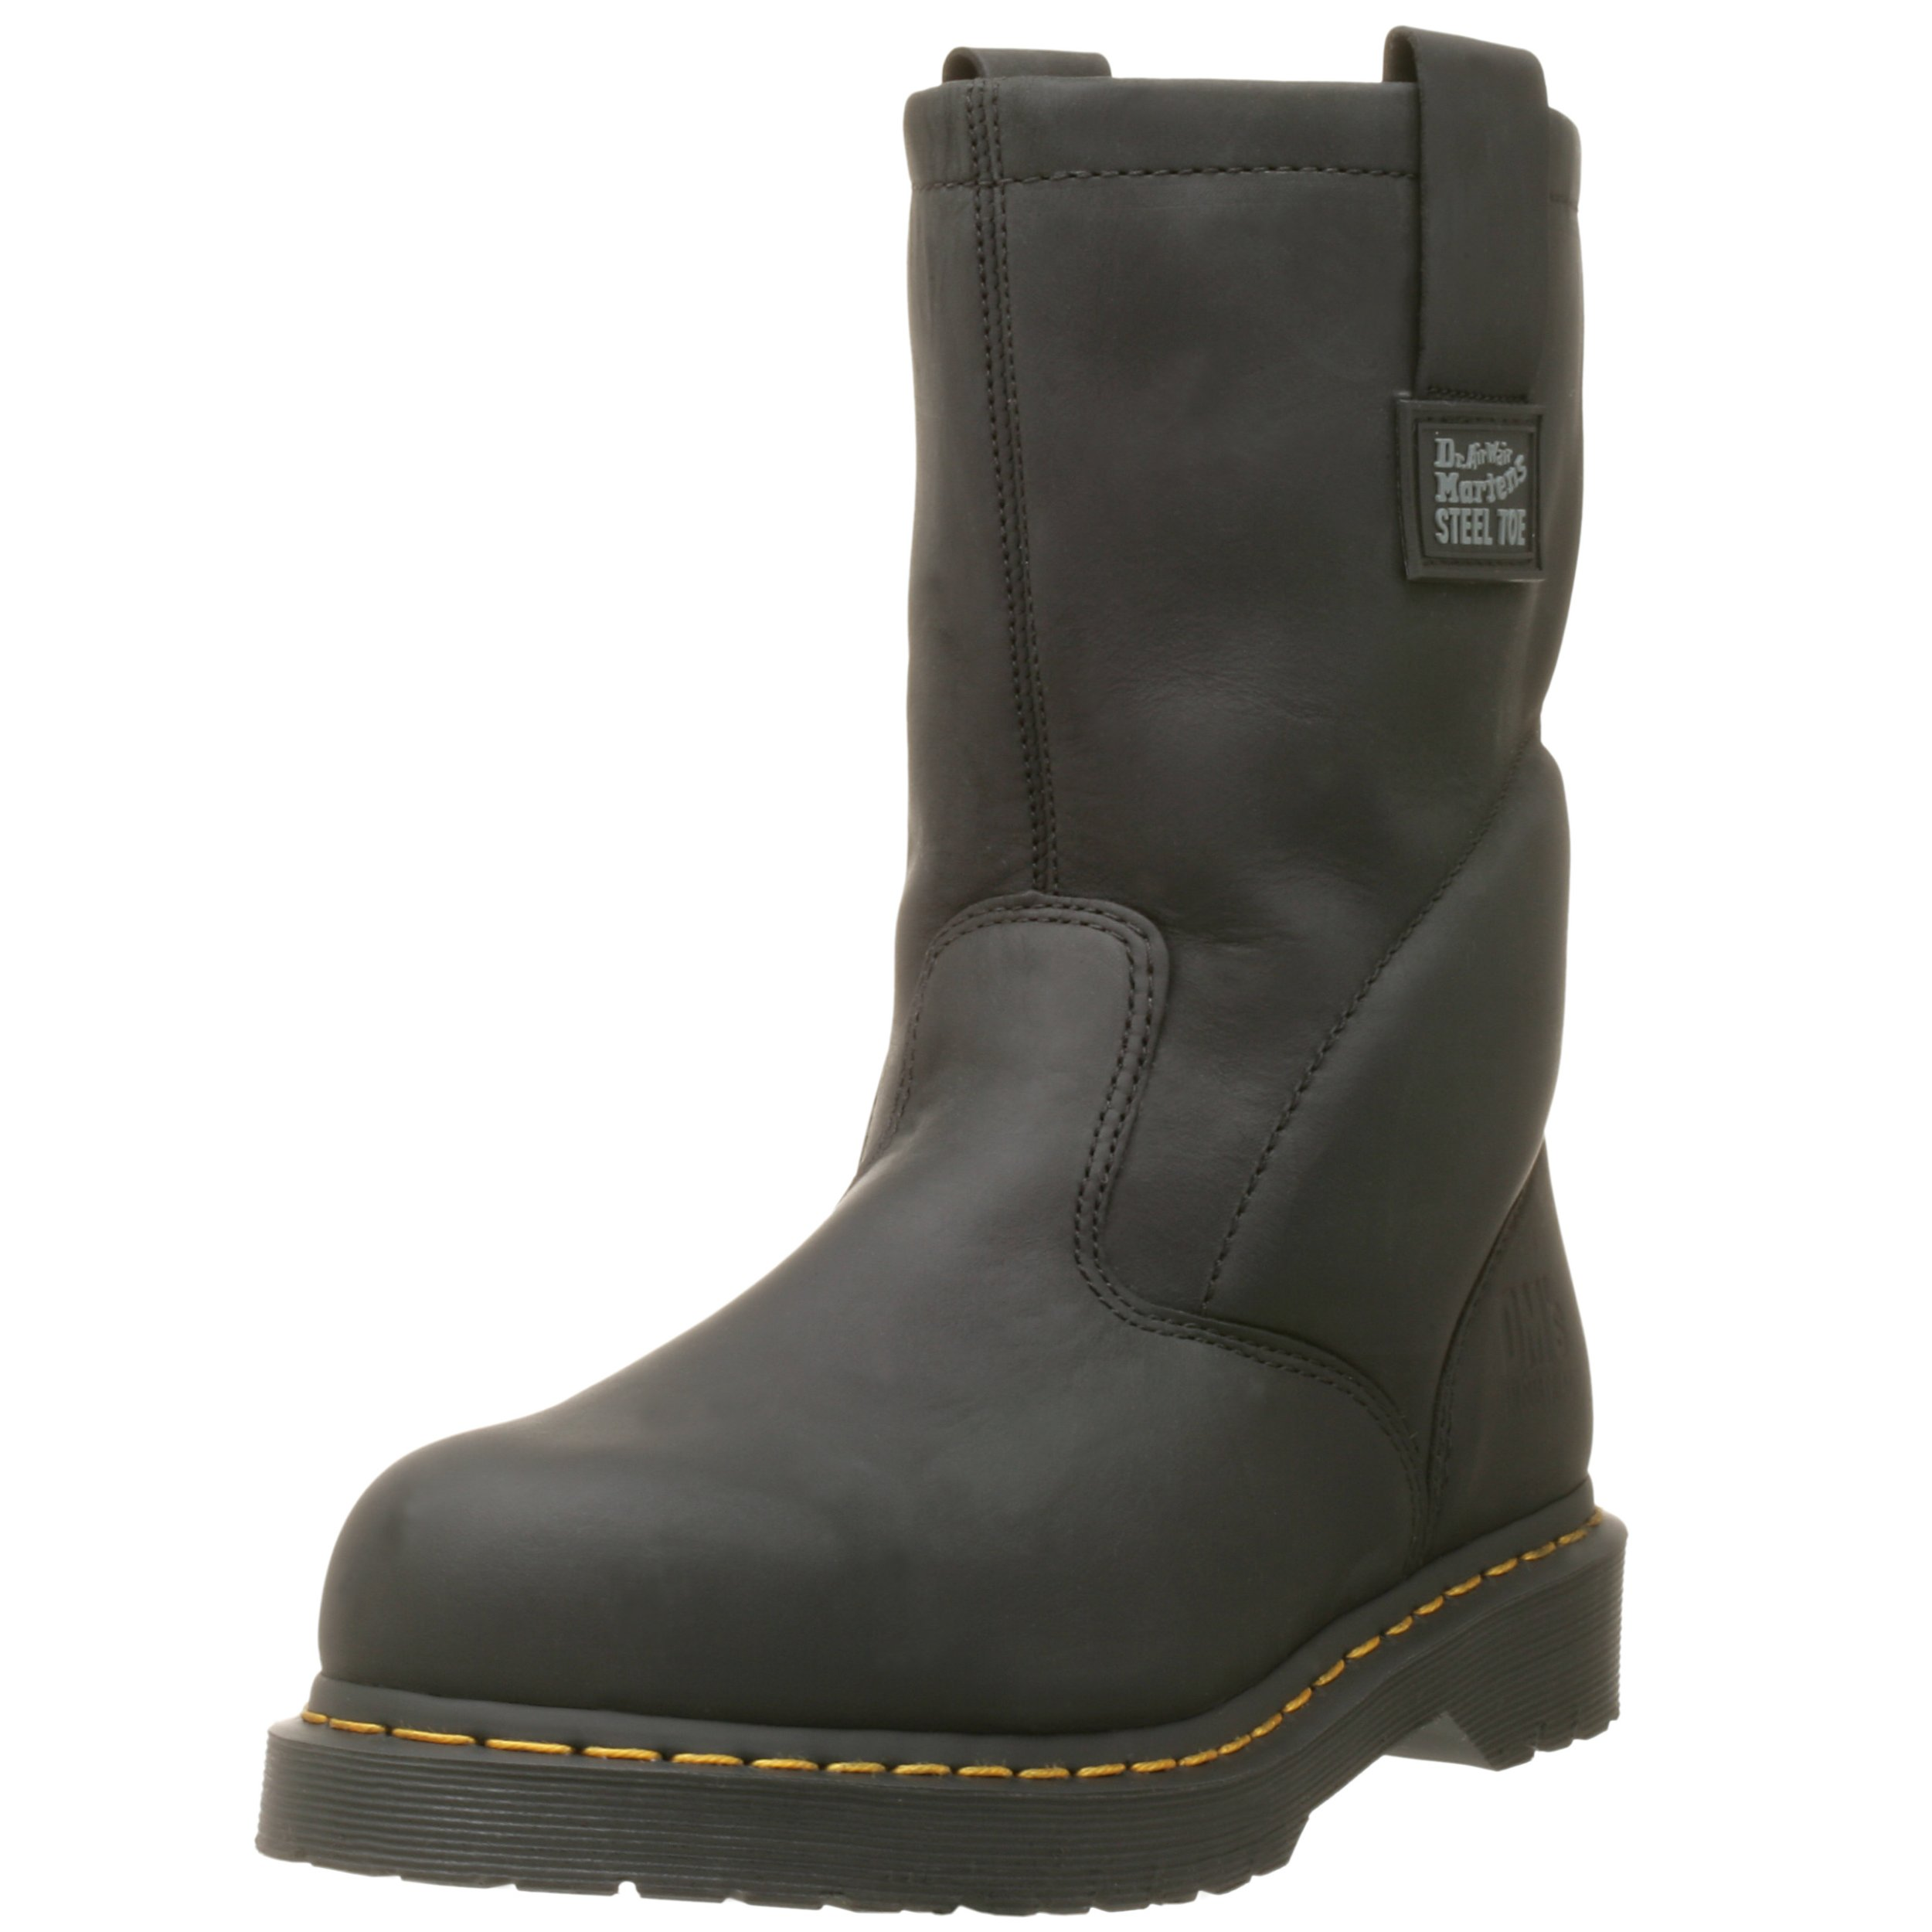 3e39a4d2040 Dr. Martens Men's Icon Industrial Strength Steel Toe Boot product image